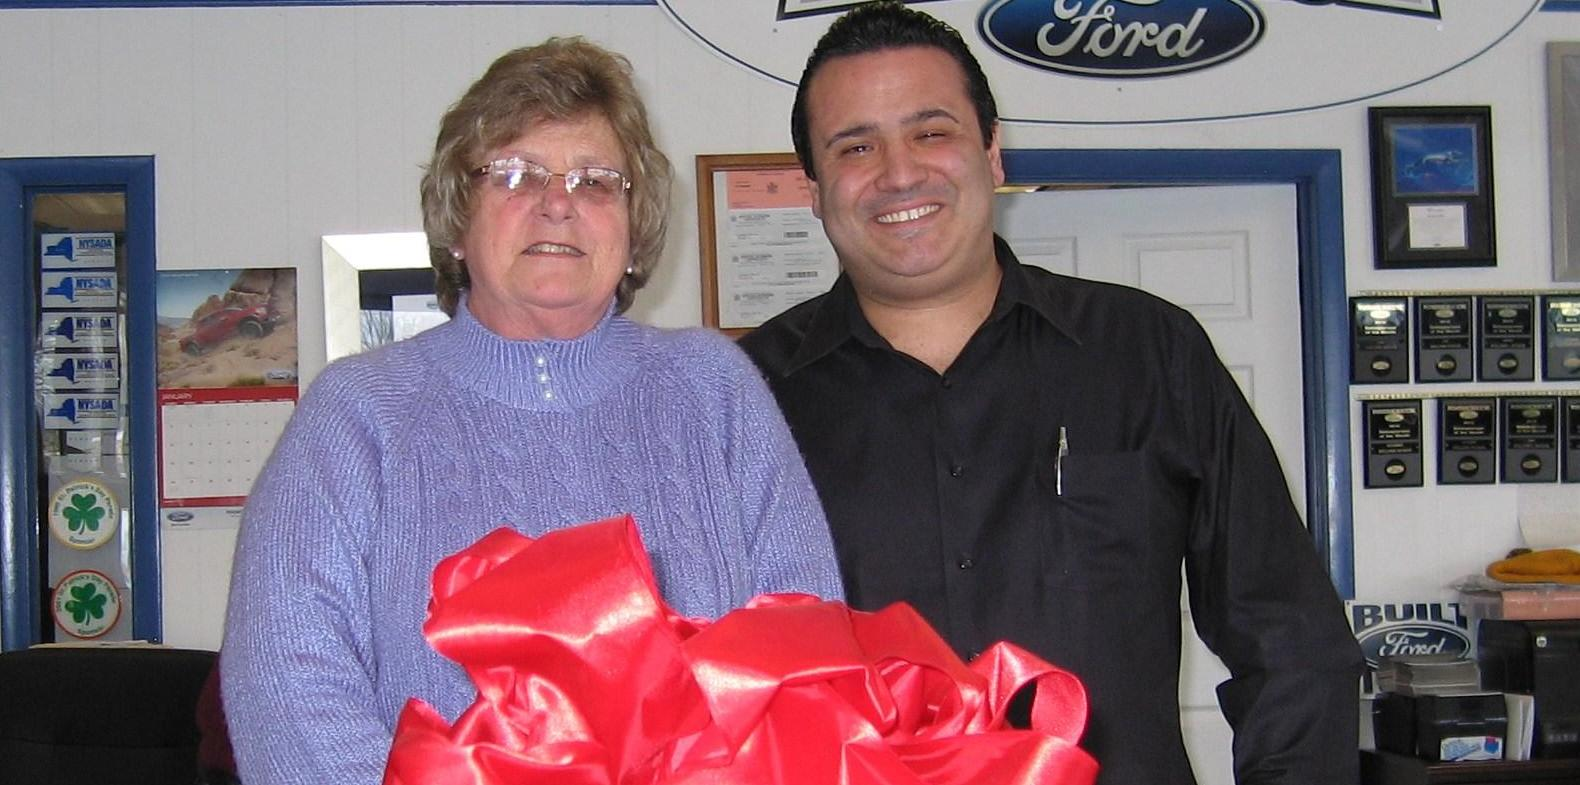 Shirley Rabbett with Lann Rubin II, general manager of Rhinebeck Ford. Arlene Wege/The Observer